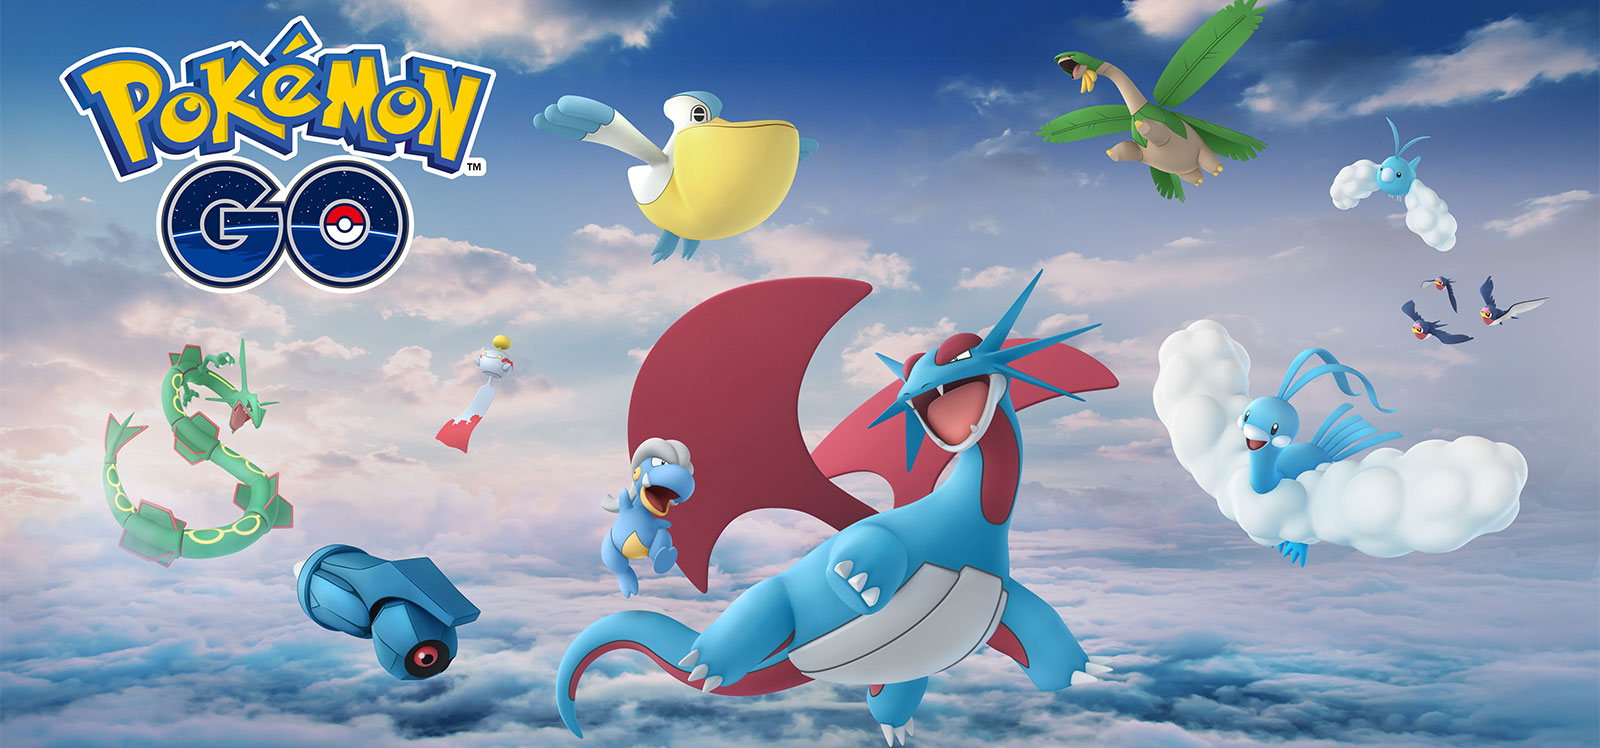 Download Pokémon GO Mod Apk 0.167.1 (Unlimited Coins) For Android